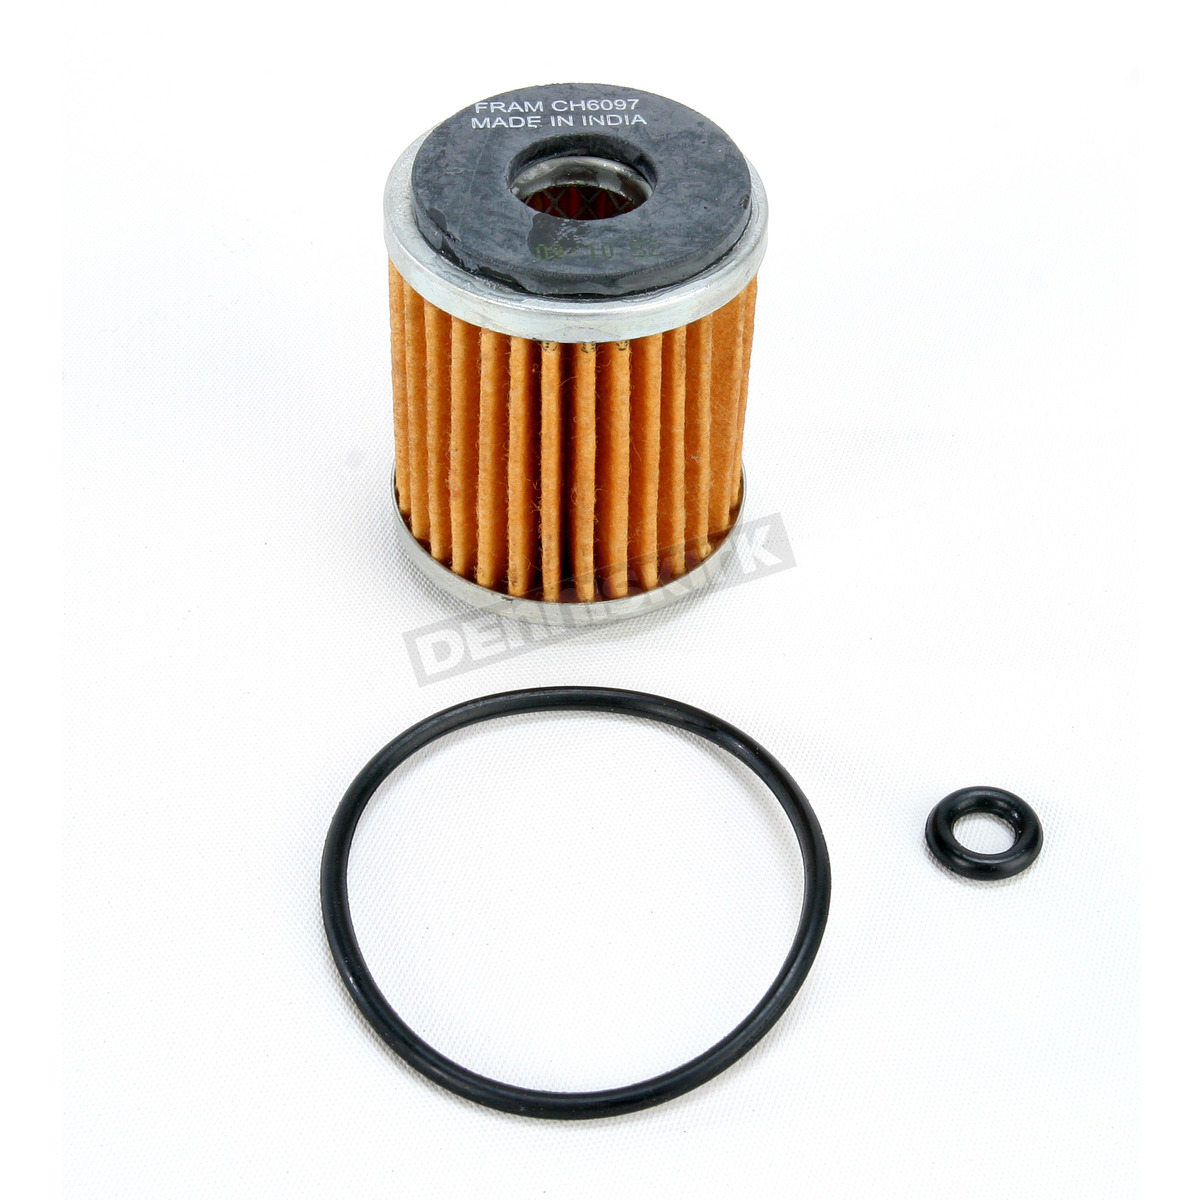 Fram Oil Filter Ch6097 Dirt Bike Dennis Kirk Performance Fuel